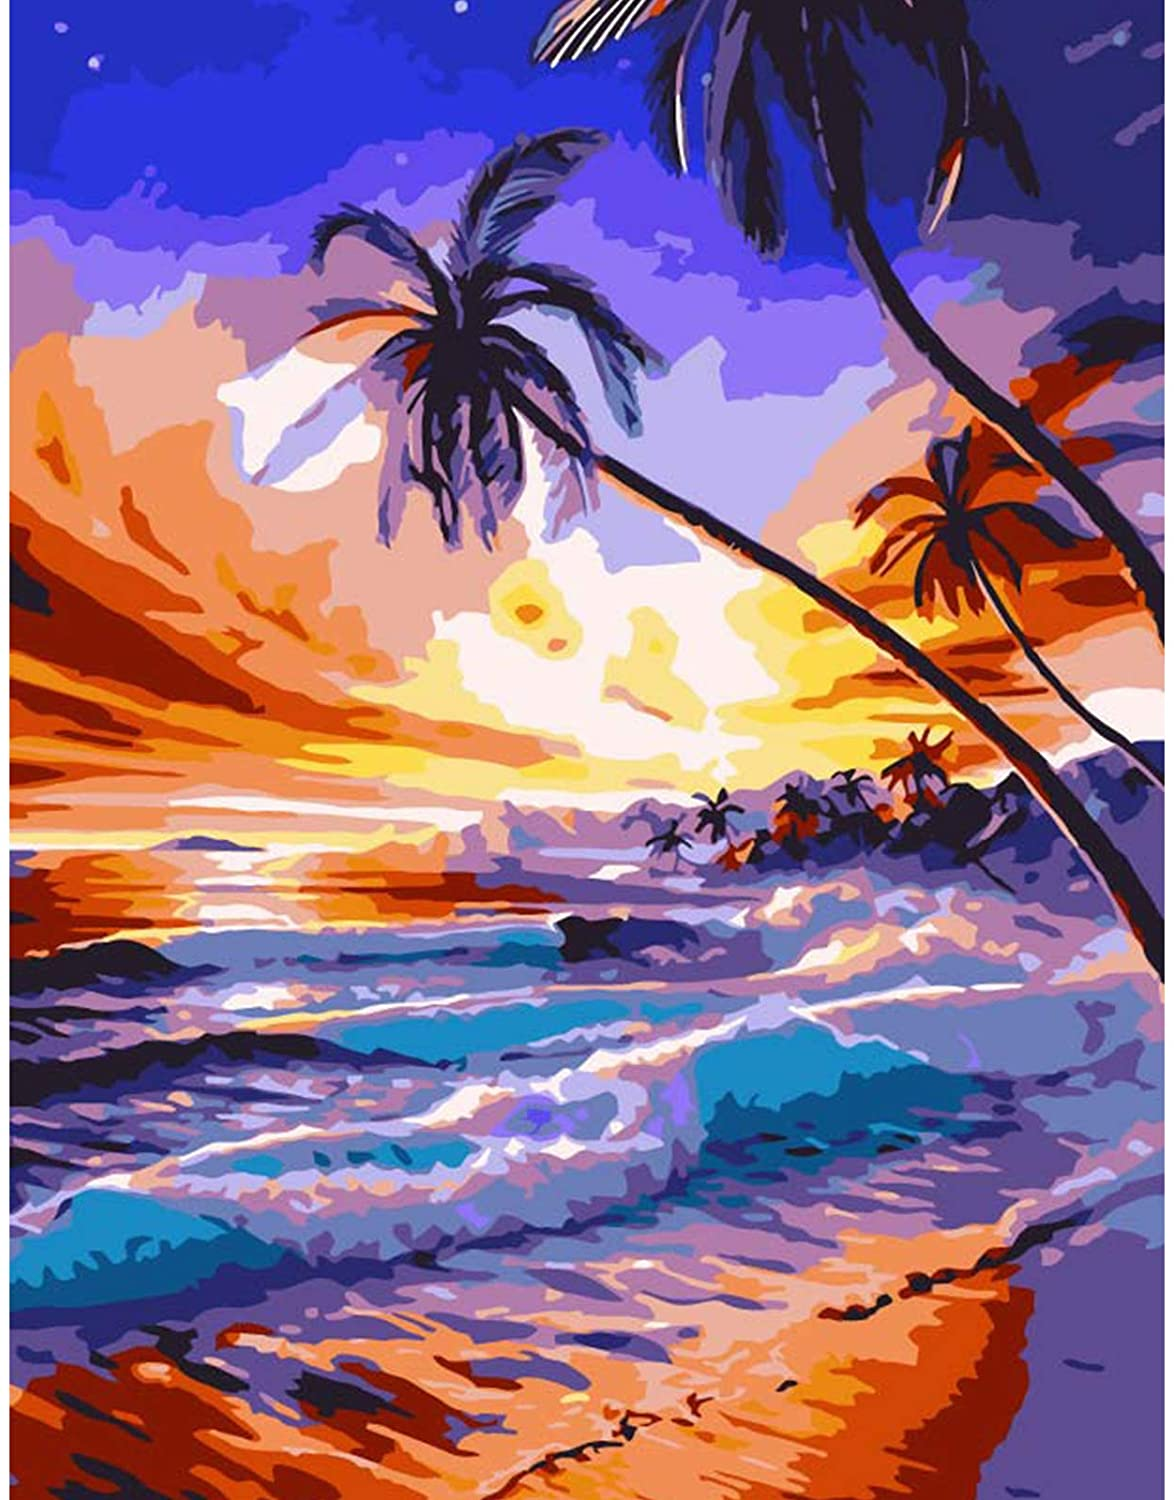 Lapoea DIY Oil Painting Paint by Number Kits Painting for Adults and Kids Arts Craft for Home Wall Decor Dusk Beach 40x50CM